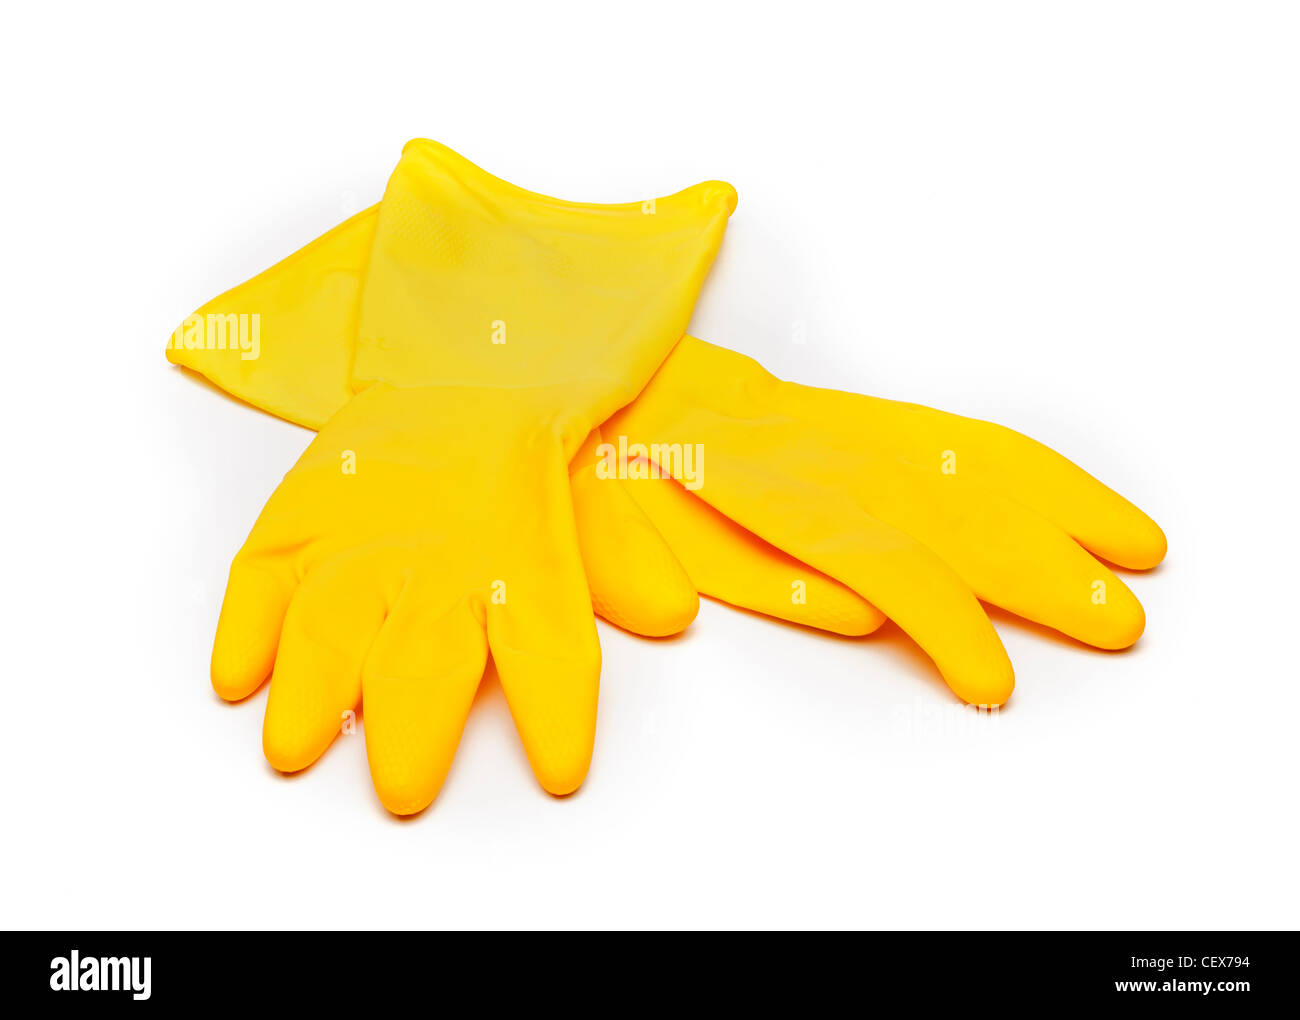 Rubber marigold gloves - Stock Image